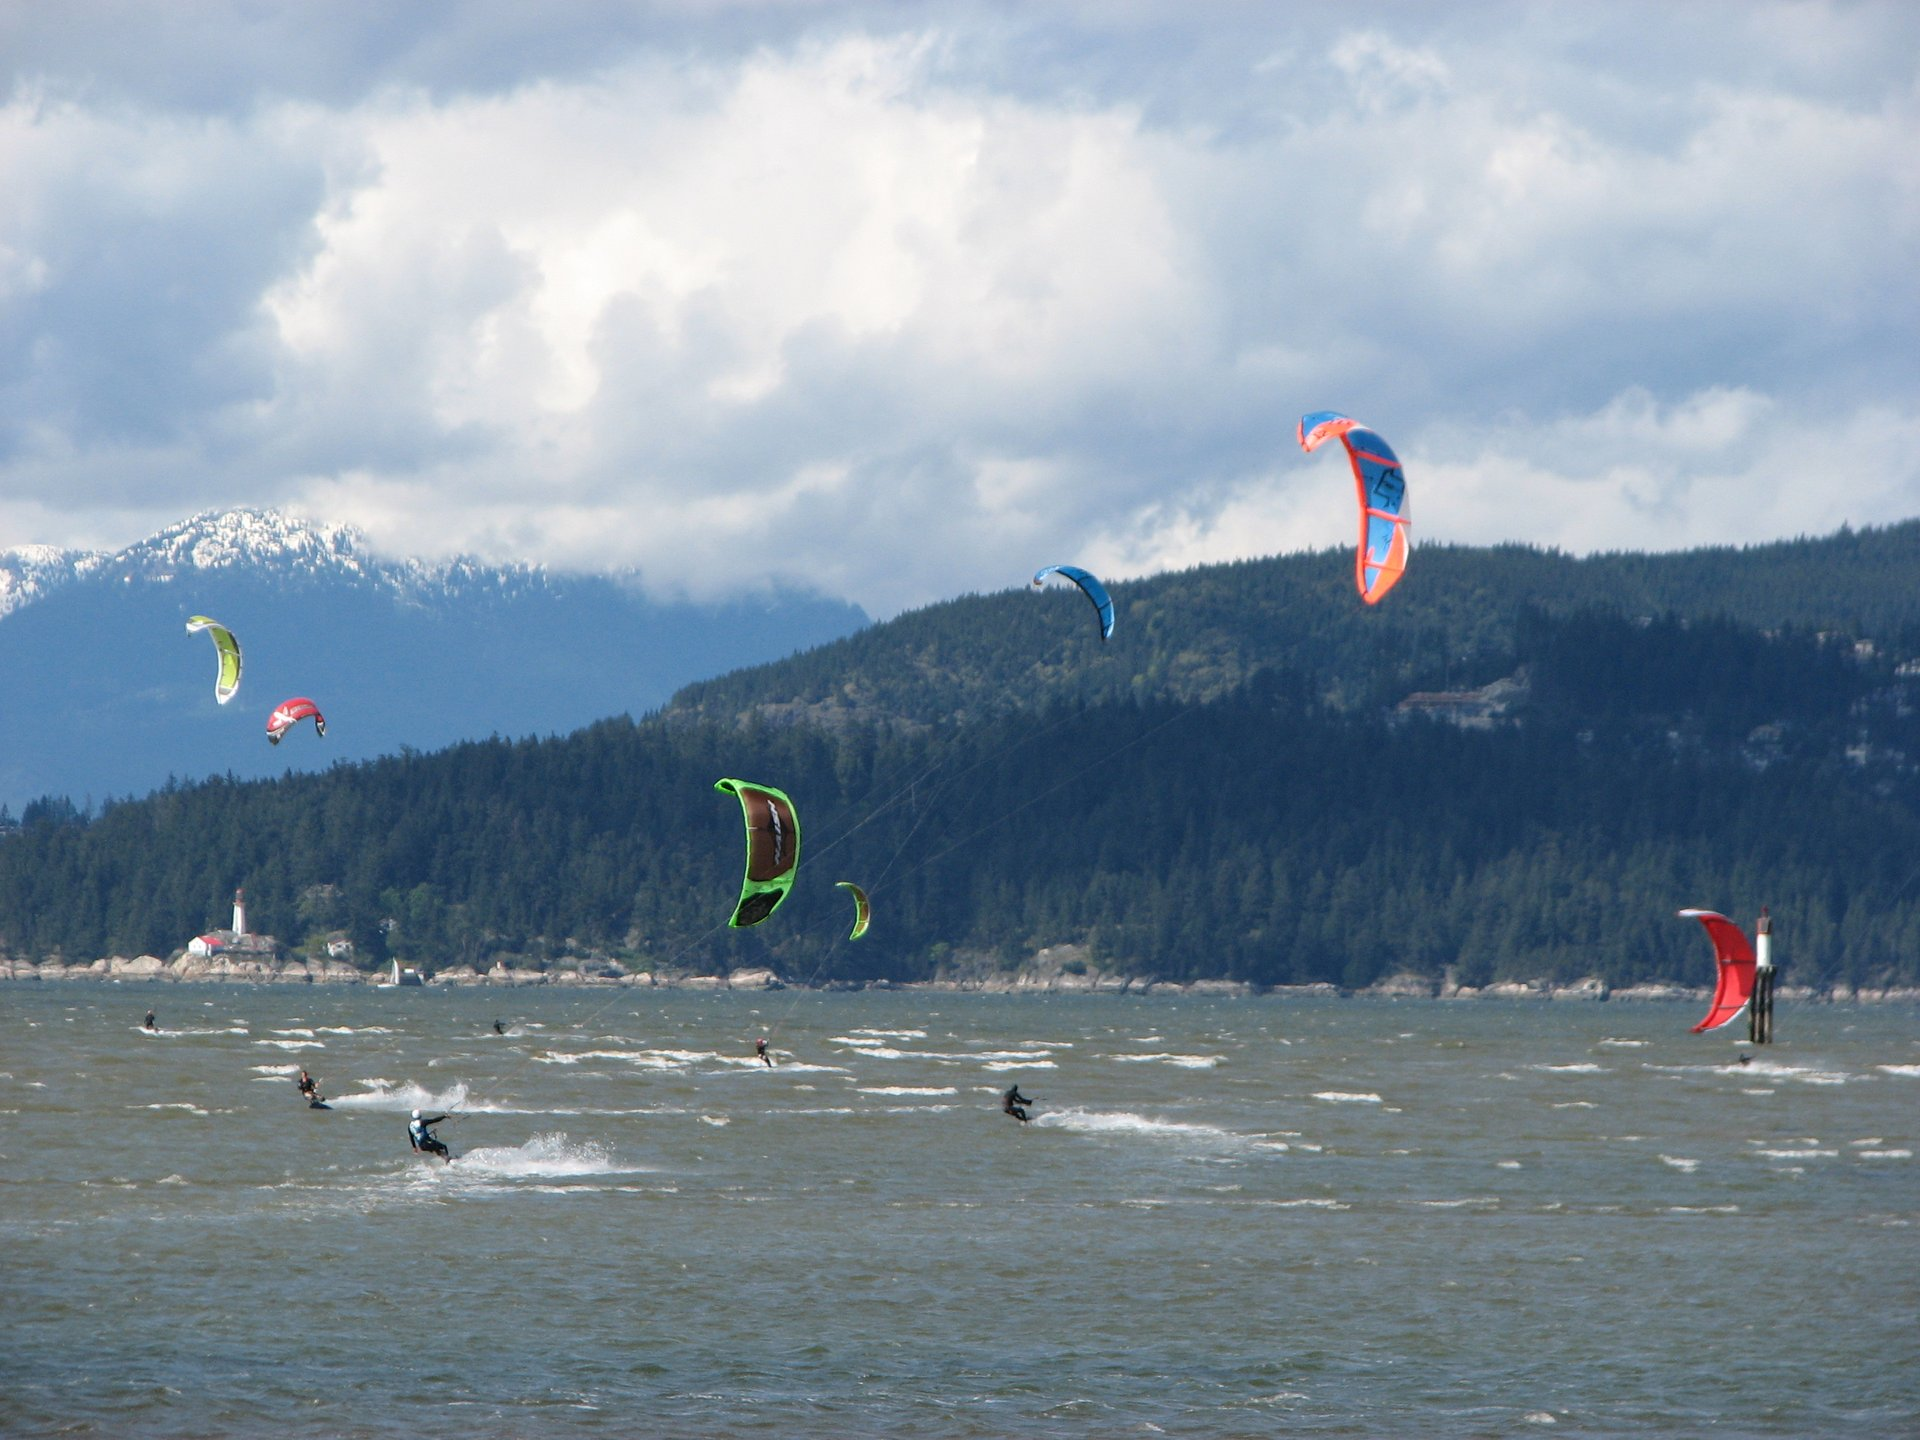 Kitesurfing on English Bay, Vancouver. Lighthouse Park in background. 2020